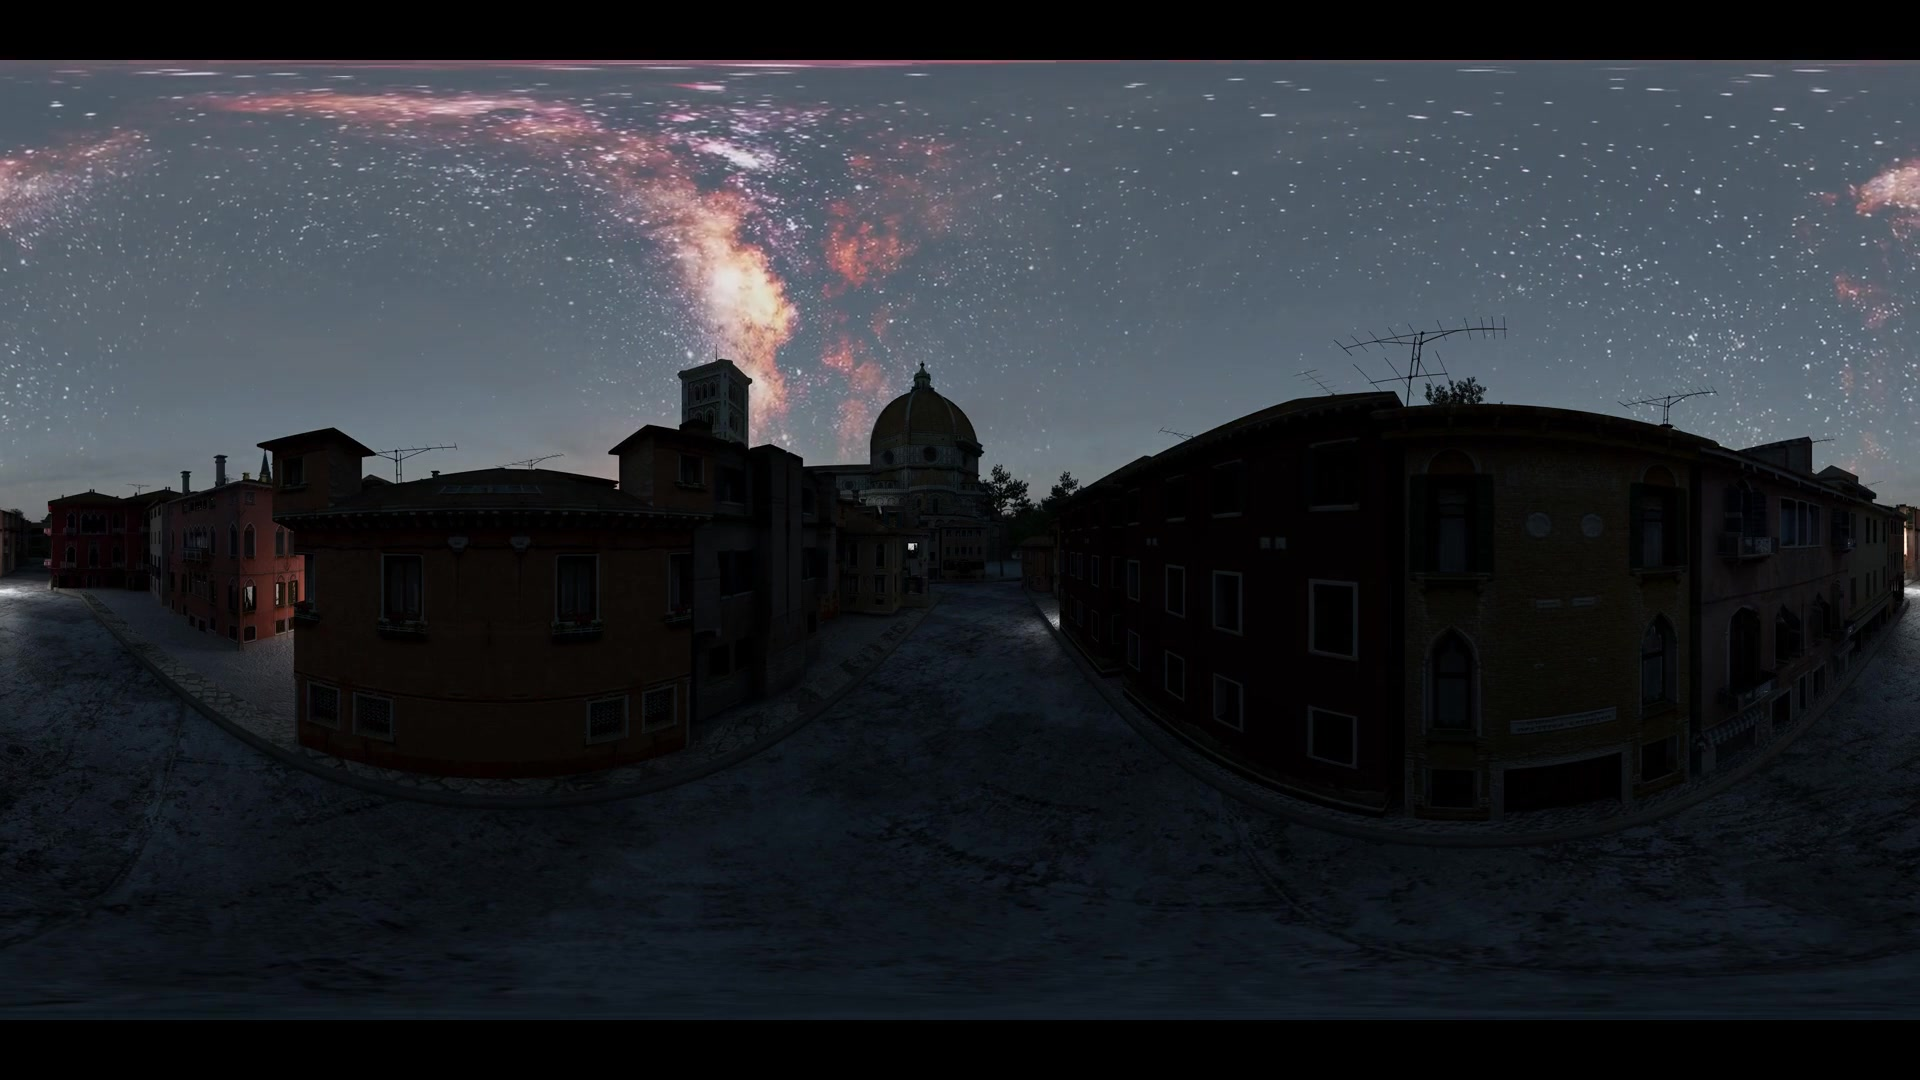 Milky Way stars at sunset virtual reality 360 degree video. Elements of this image furnished by NASA